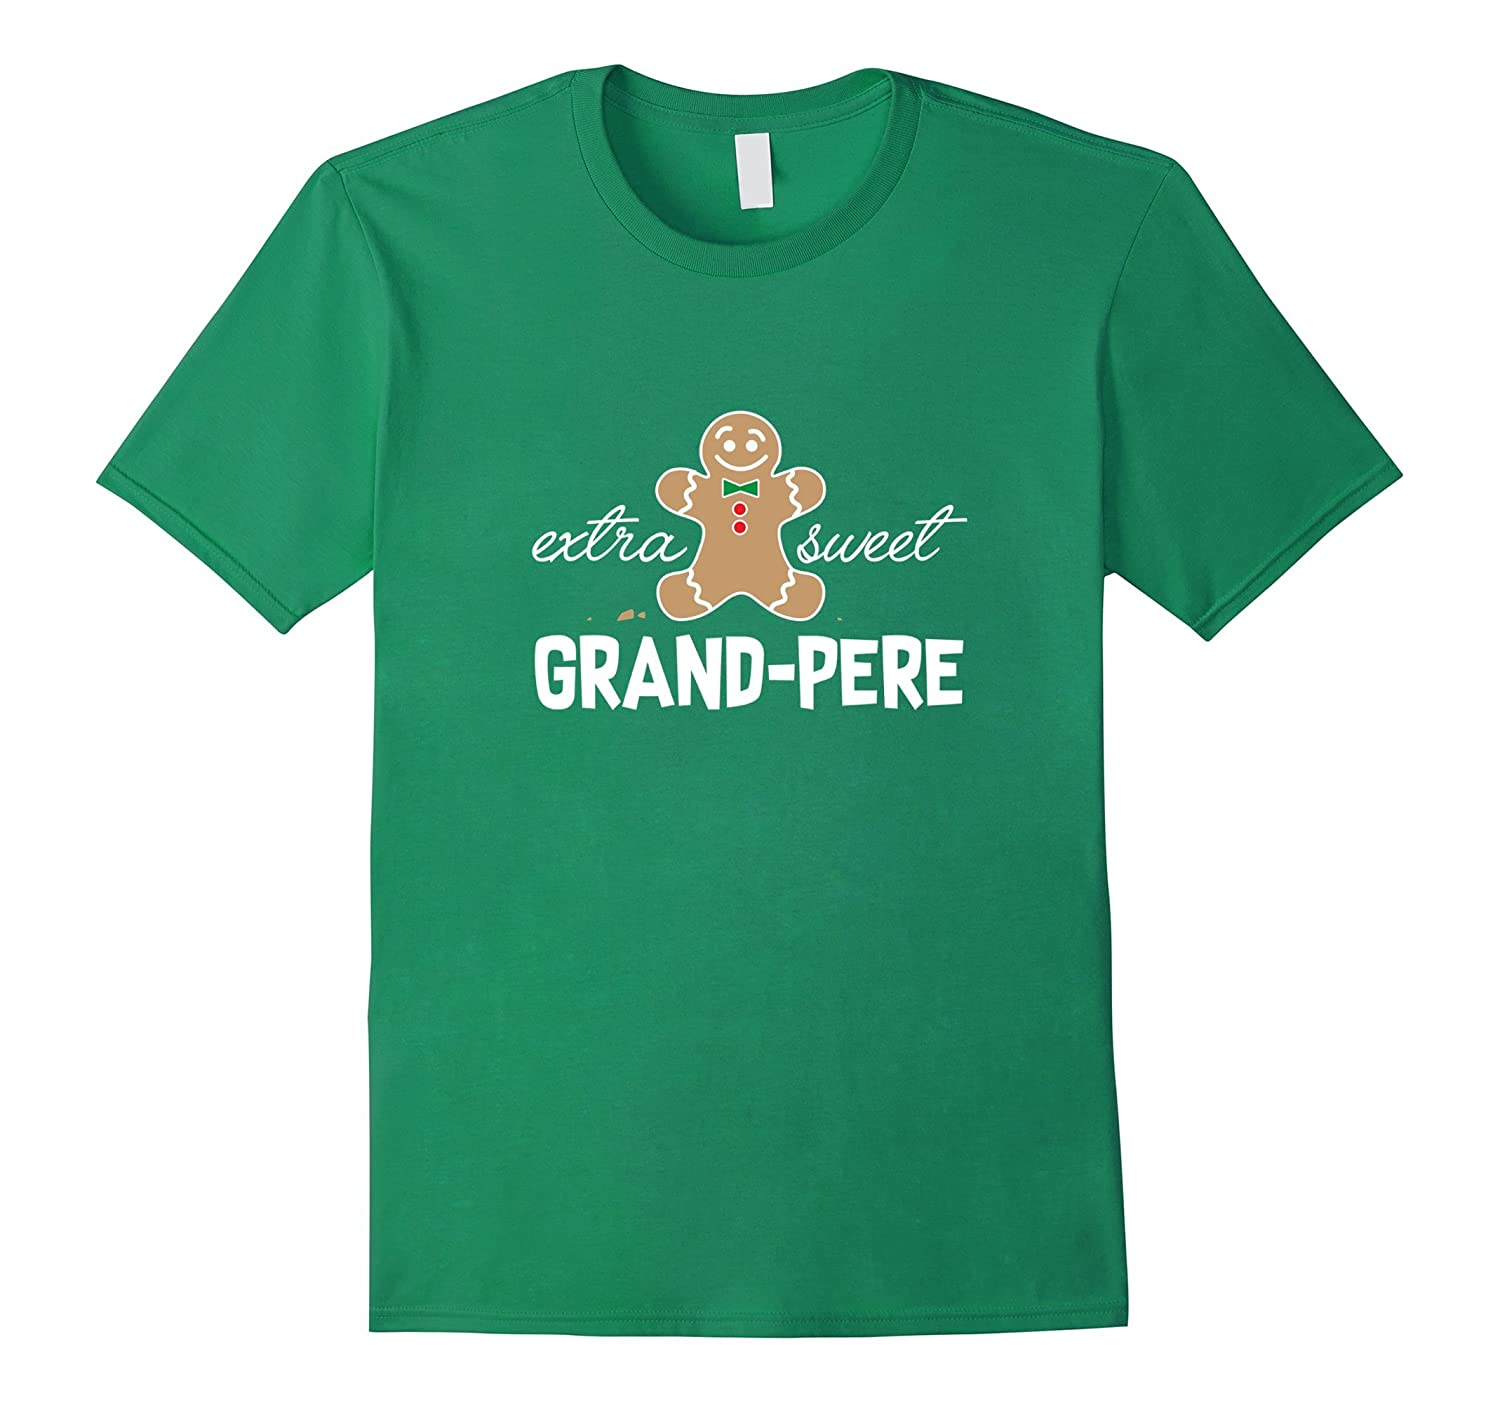 Extra Sweet Grand-pere T-Shirt_ Cute Christmas Gingerbread-FL